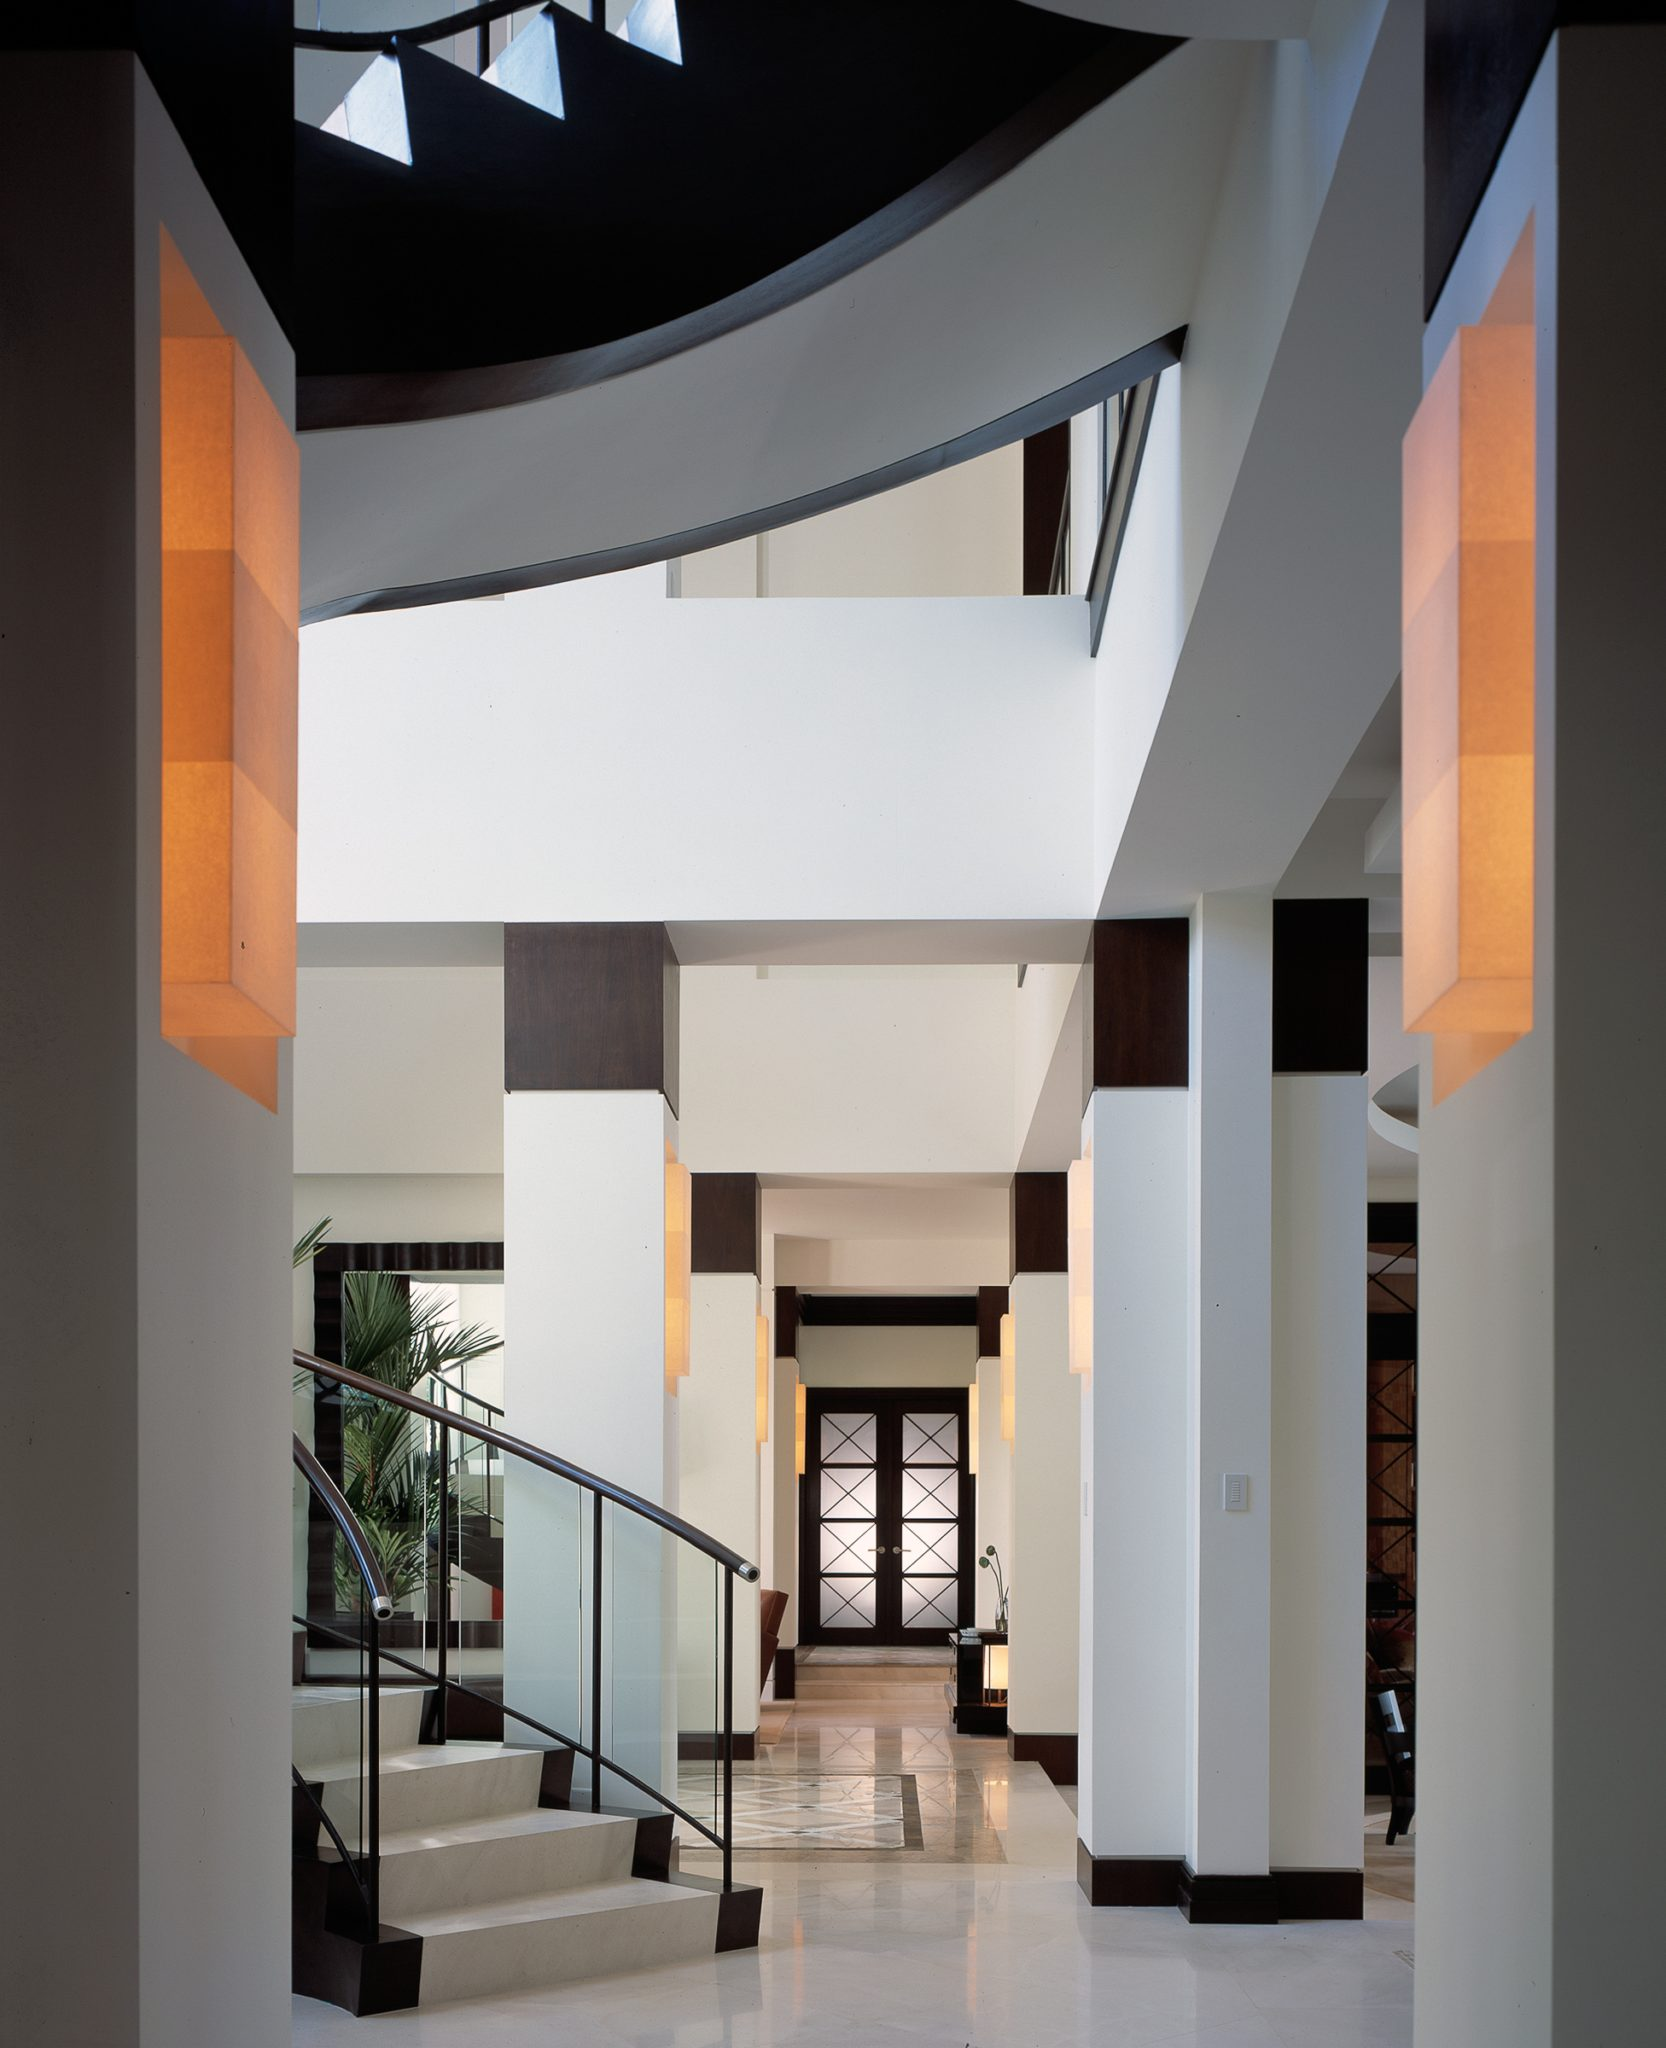 A sculptural foyer own white with glass, wood and metal details, captivates. by Alene Workman Interior Design